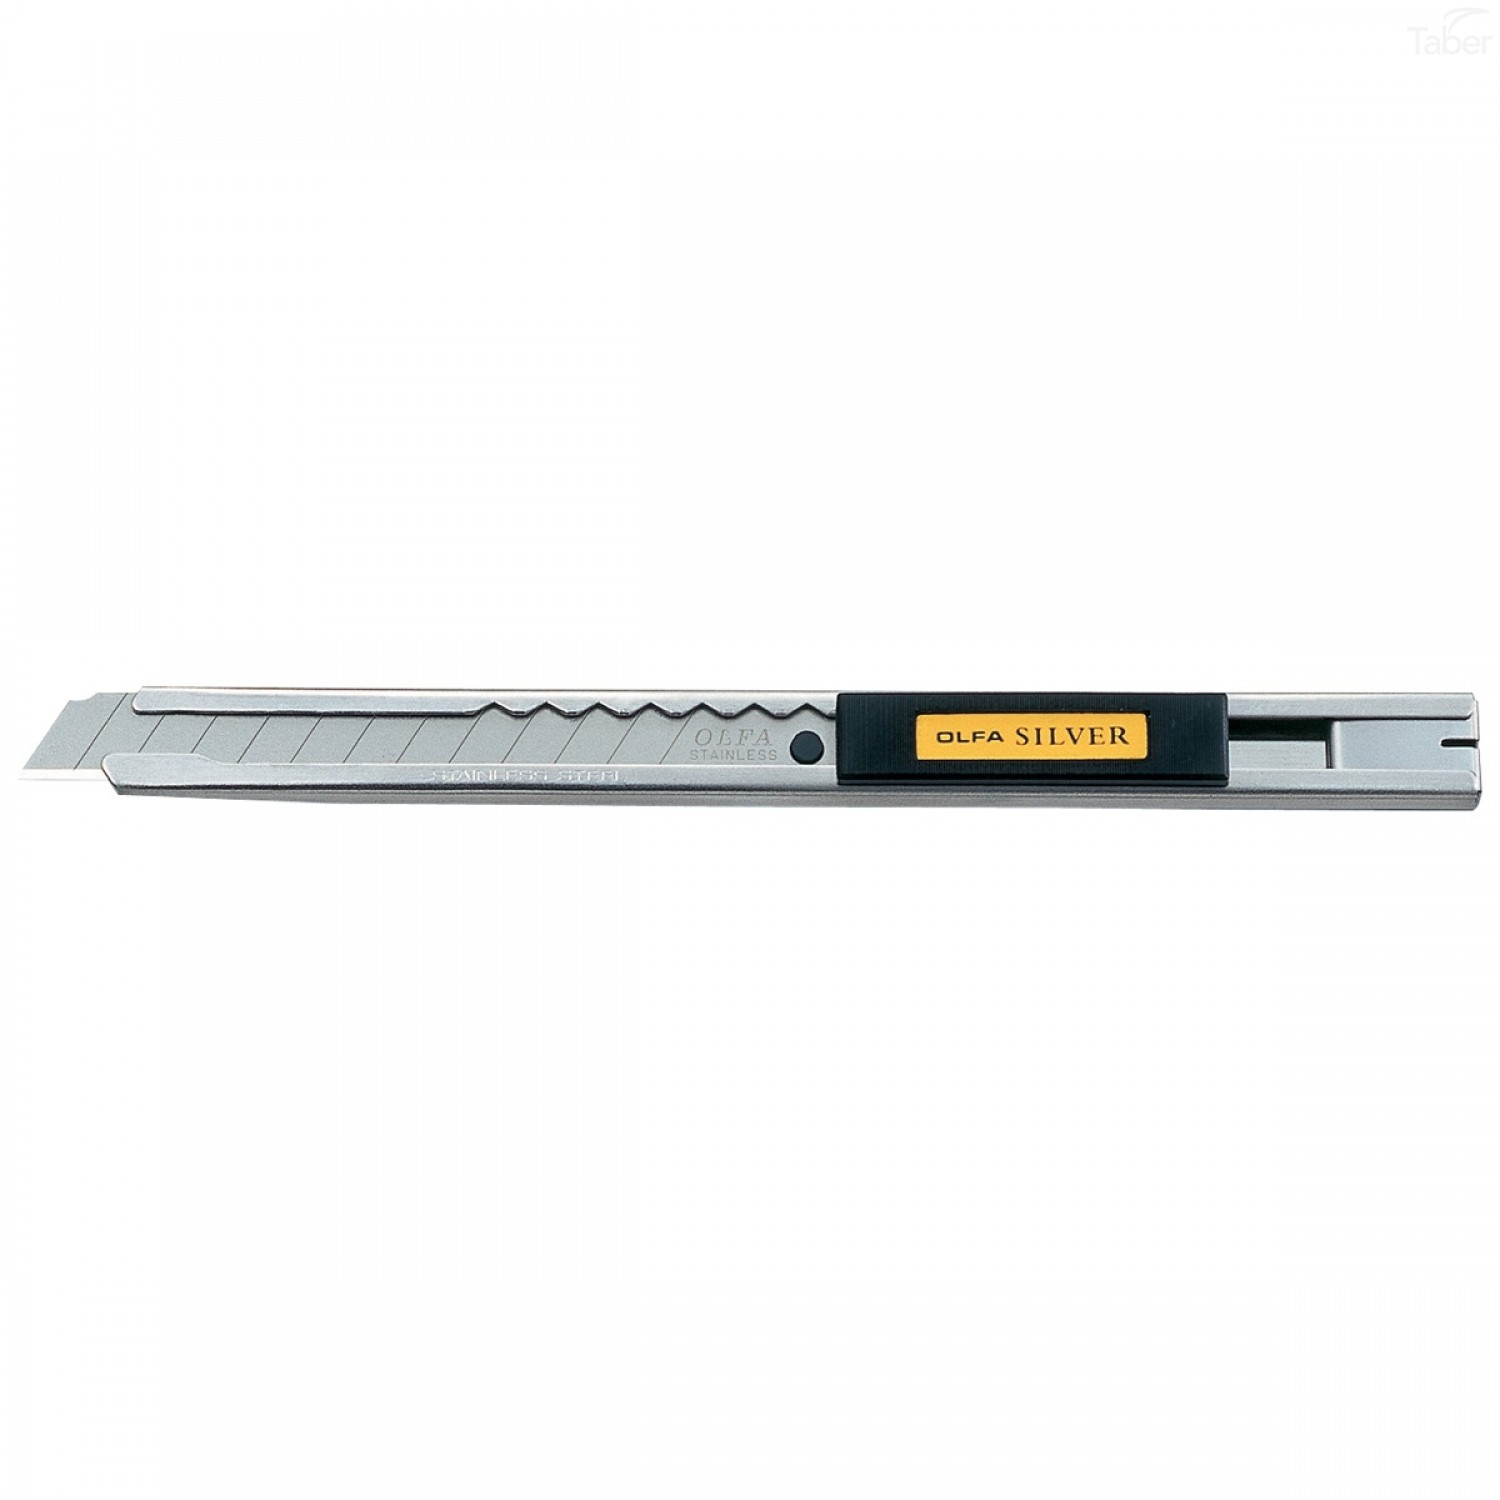 OLFA Stainless Steel Precision Knife, Slide (SVR-1)